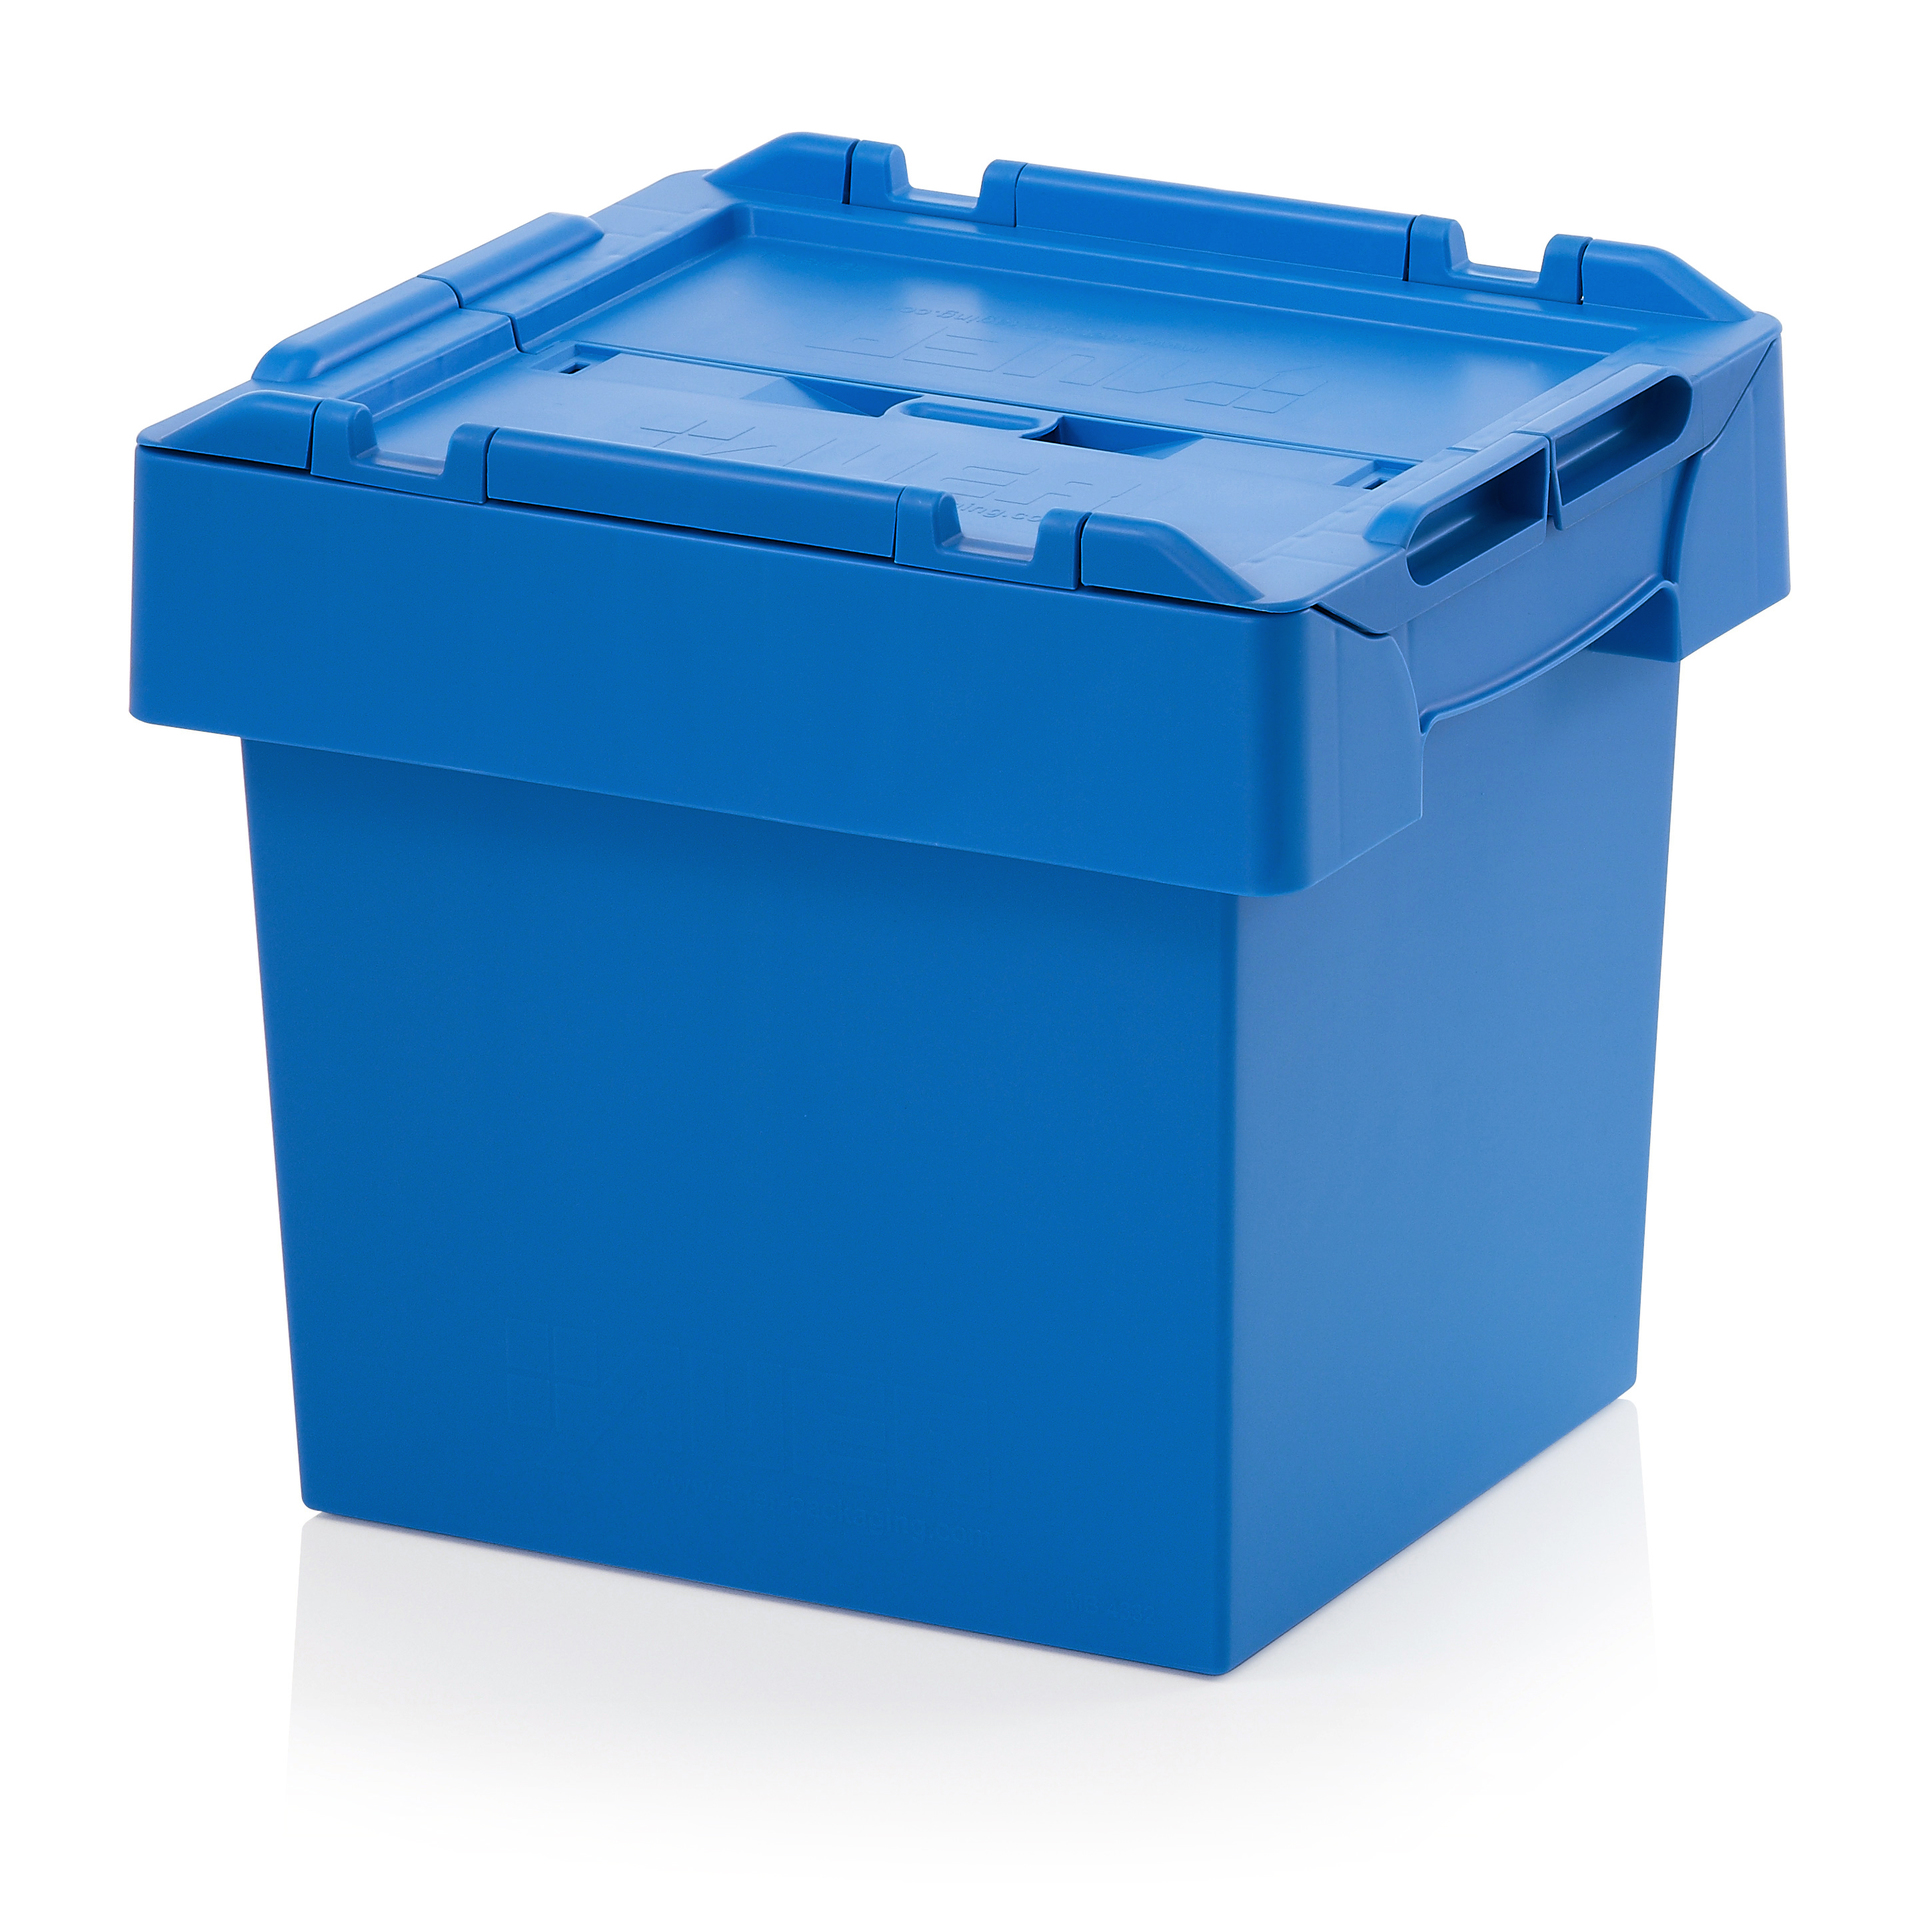 RC4320L_1 Reusable Containers - Plastic Mouldings Northern